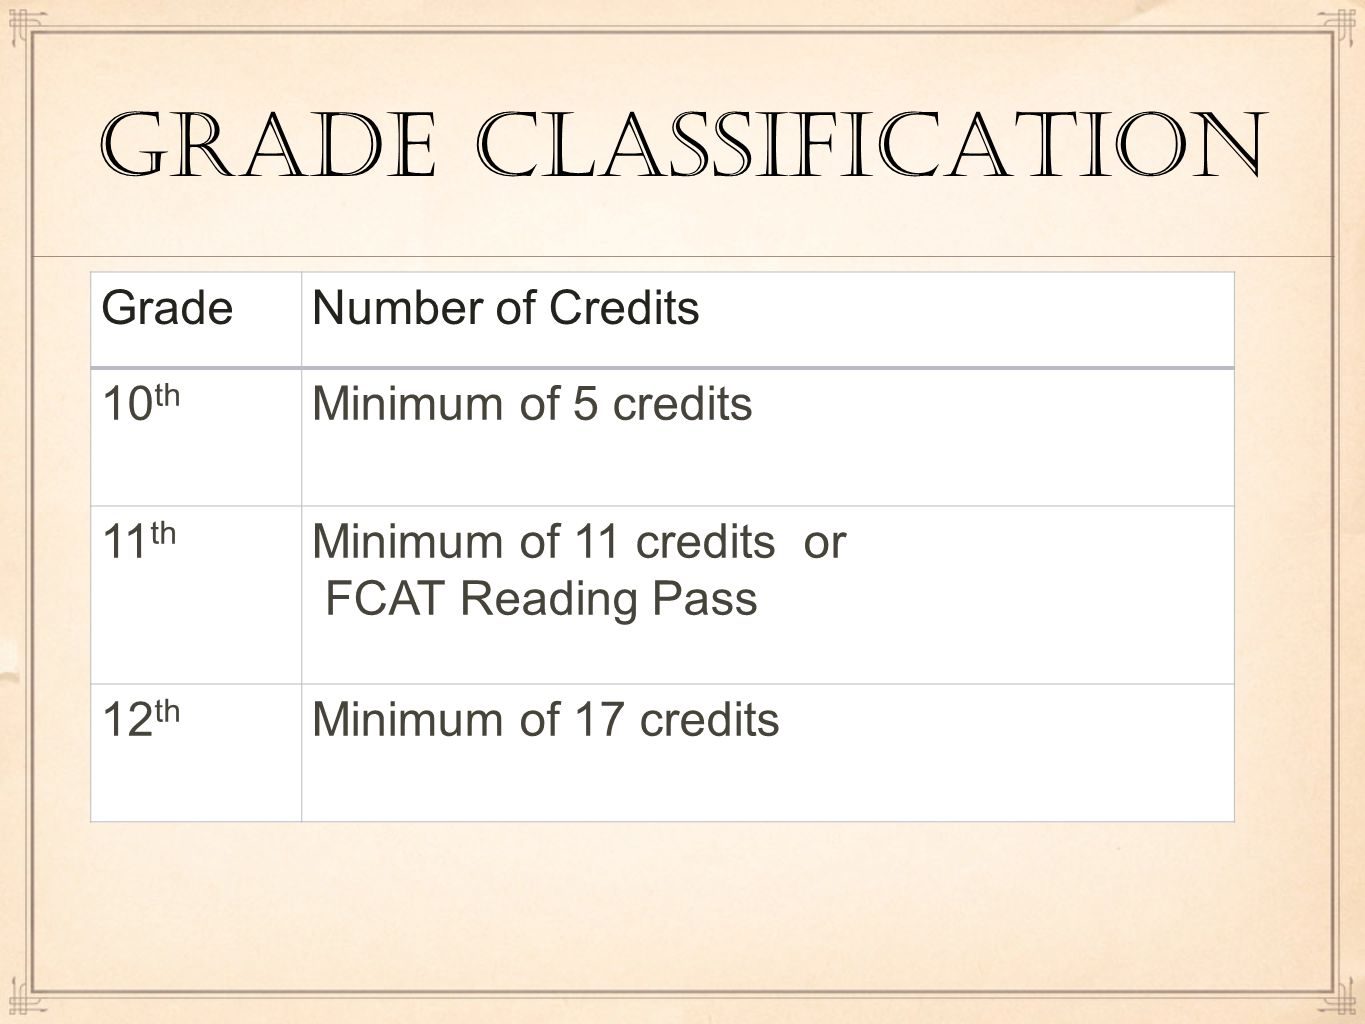 Grade classification GradeNumber of Credits 10 th Minimum of 5 credits 11 th Minimum of 11 credits or FCAT Reading Pass 12 th Minimum of 17 credits